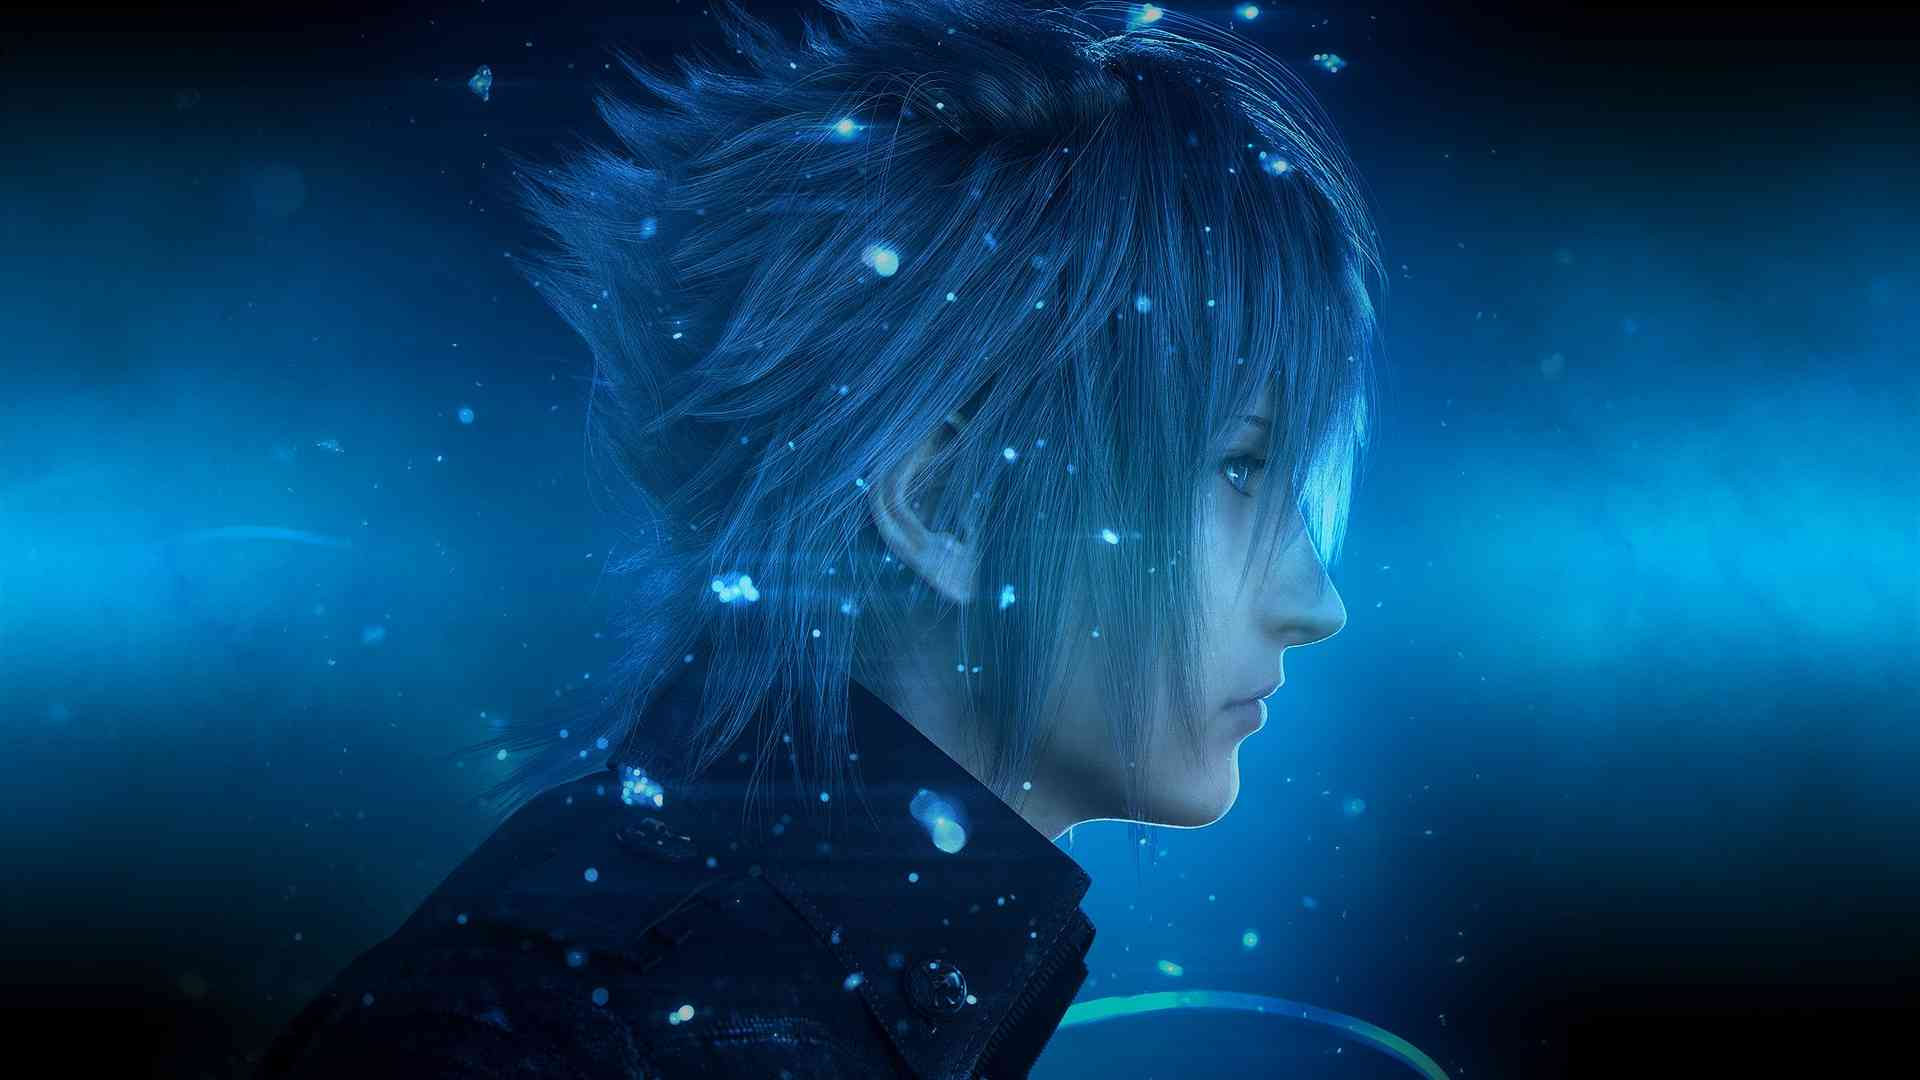 Final Fantasy XV Review - Easily The Best JRPG Around